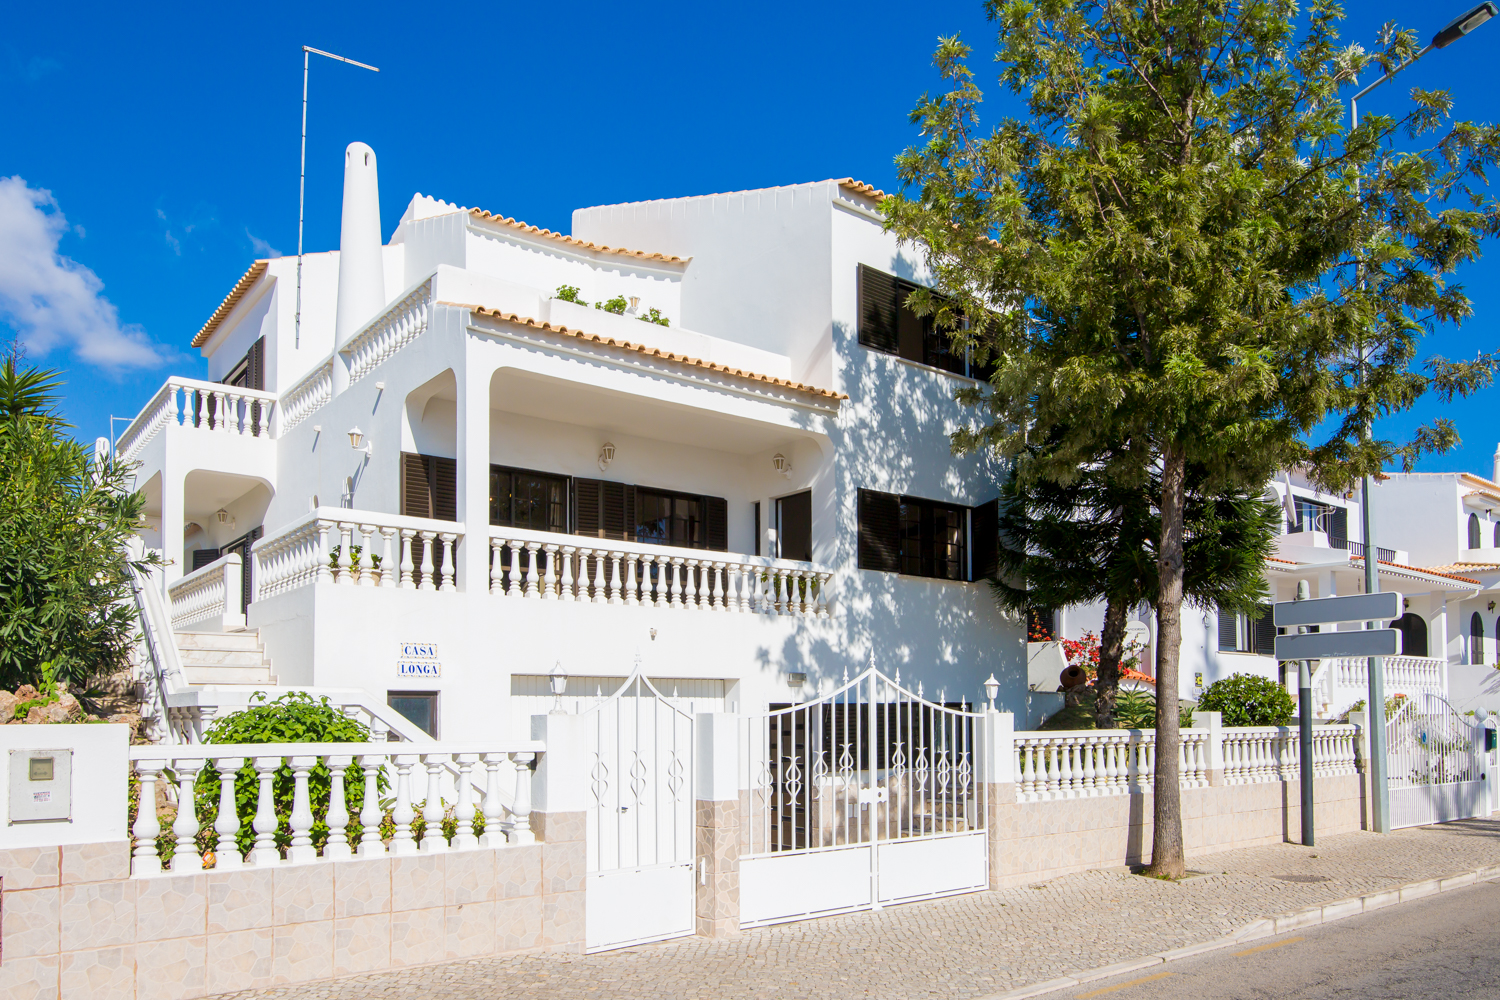 Large, Forte Sao Joao Villa has sea views, 350 metres from sandy beach. 3 floor